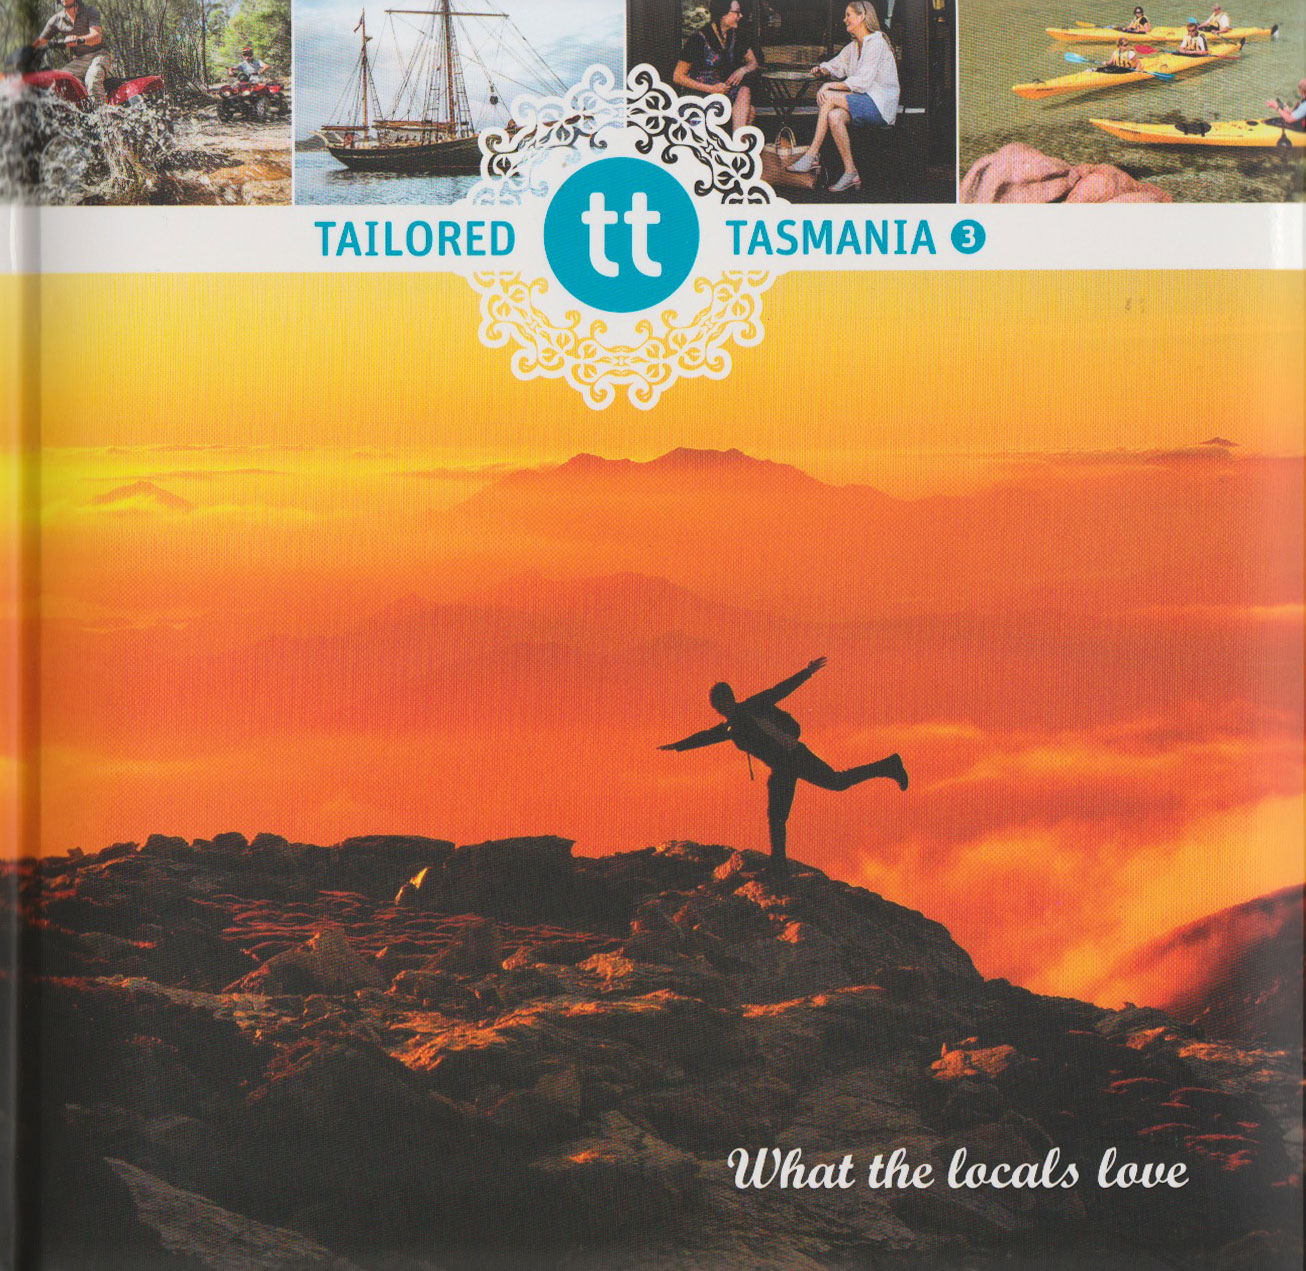 Tailored Tasmania 3 - What the locals love